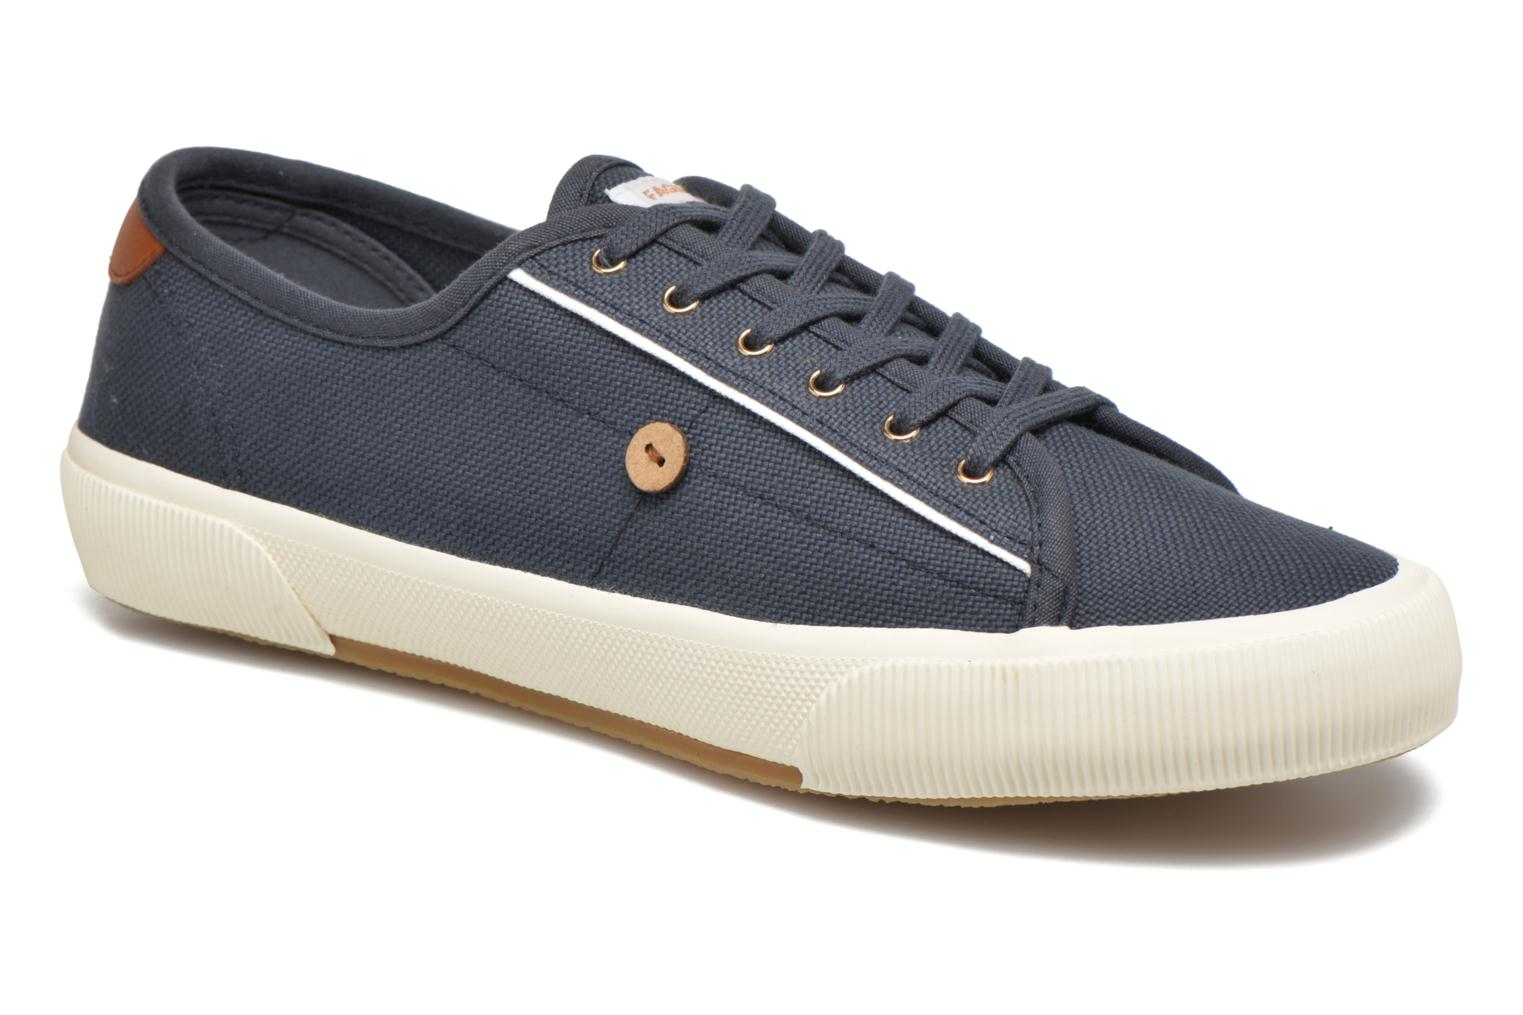 Marques Chaussure homme Faguo homme Oak m Navy